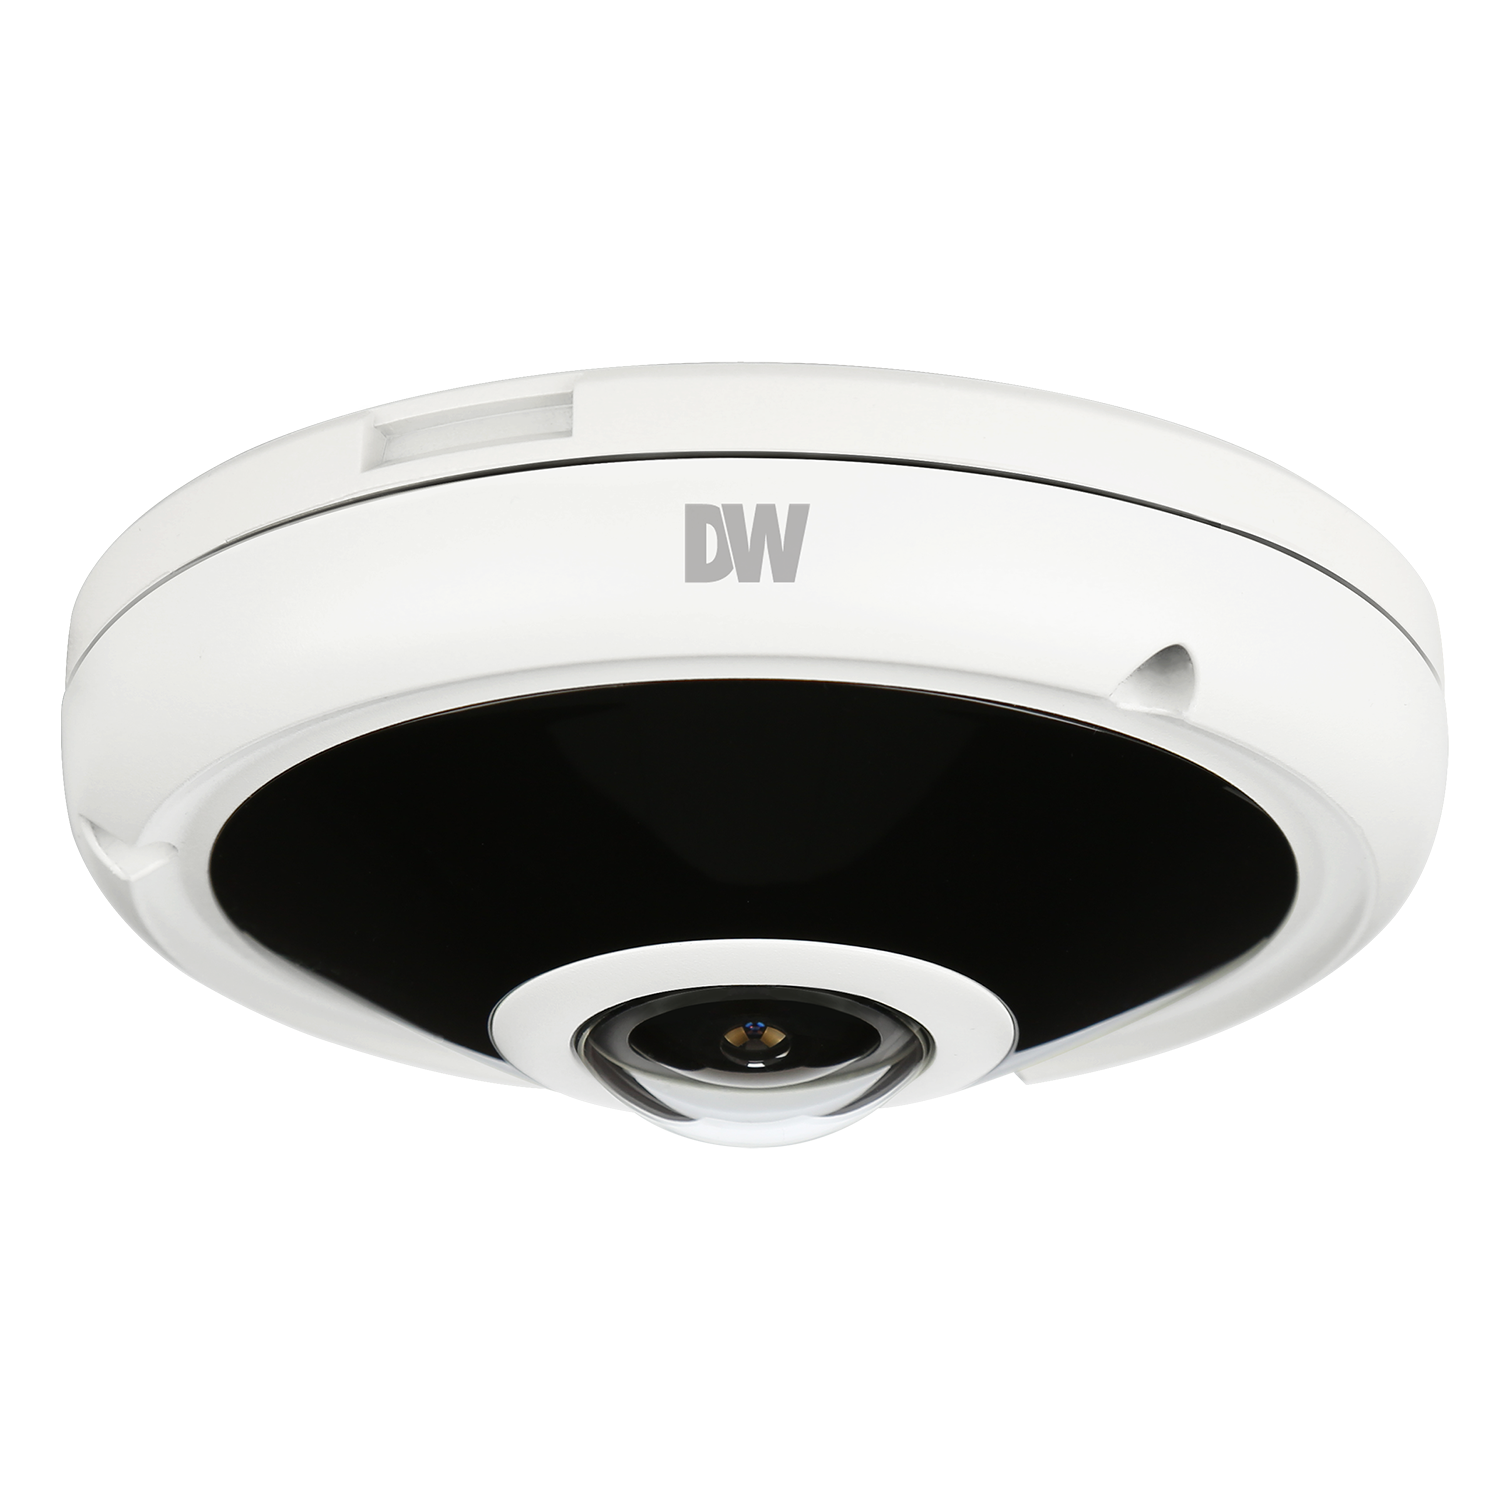 DWC-PVF5M1TIRC1 DIGITAL WATCHDOG MEGApix PANO 5MP 360-degree Hemispheric Fisheye Vandal Dome, 360 and 180-degree Panoramic view with Edge to Edge Clarity, 1/1.8 Image Sensor, 30fps @ 2592x1944, 1.55mm fixed lens, Multi Codecs (H.265, H.264, MJPEG) with Simultaneous Dual Streams, 55ft Smart IR, True Day/Night with Mechanical IR Cut Filter, Smart DNR 3D Digital Noise Reduction, Auto Gain Control (AGC), Auto White Balance (AWB), Motion Detection, Micro SD/SDHC Class 10 Card Slot (card not included), Web Server Bullet In, Onvif Profile S, POE and DC12V, 5 Year Warranty. Note: DW Spectrum IPVMS pre loaded. Connect up to 12 CaaS cameras simultaneously in a single system. Built in 128GB memory for local recording. Dual recording option with Blackjack NAS. ************************* SPECIAL ORDER ITEM NO RETURNS OR SUBJECT TO RESTOCK FEE *************************